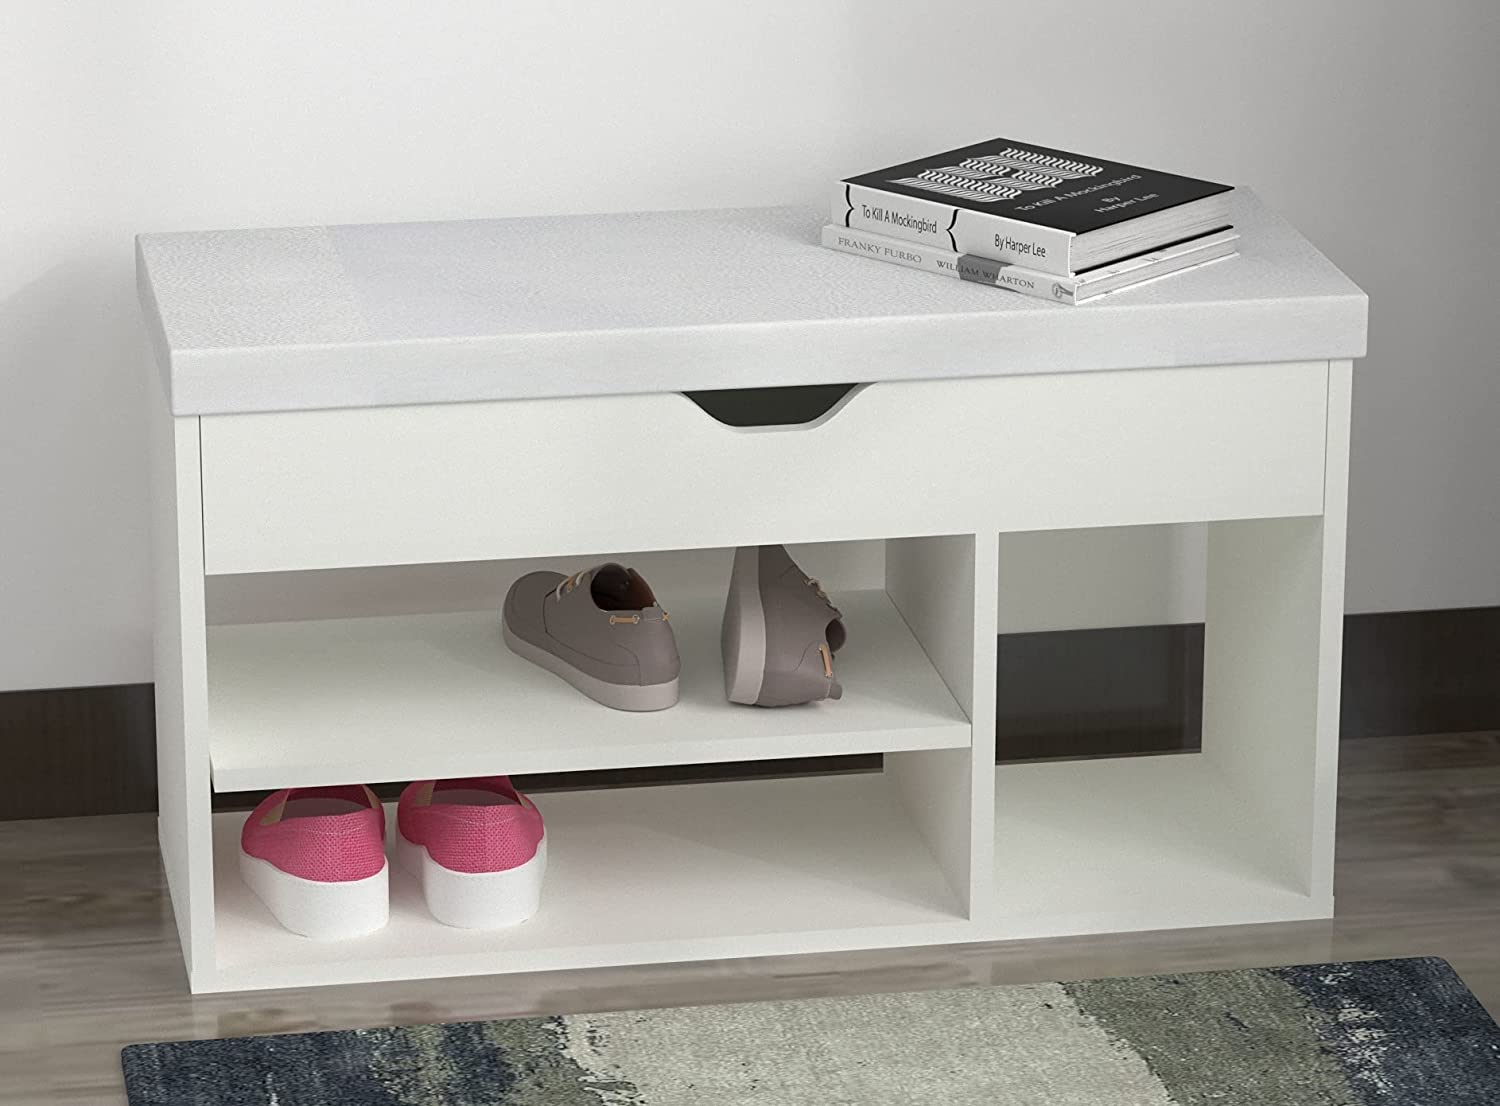 REMMUS お値打ち価格で Entryway Shoe Bench with Padded Seat Cushion Storage 低価格化 Ben